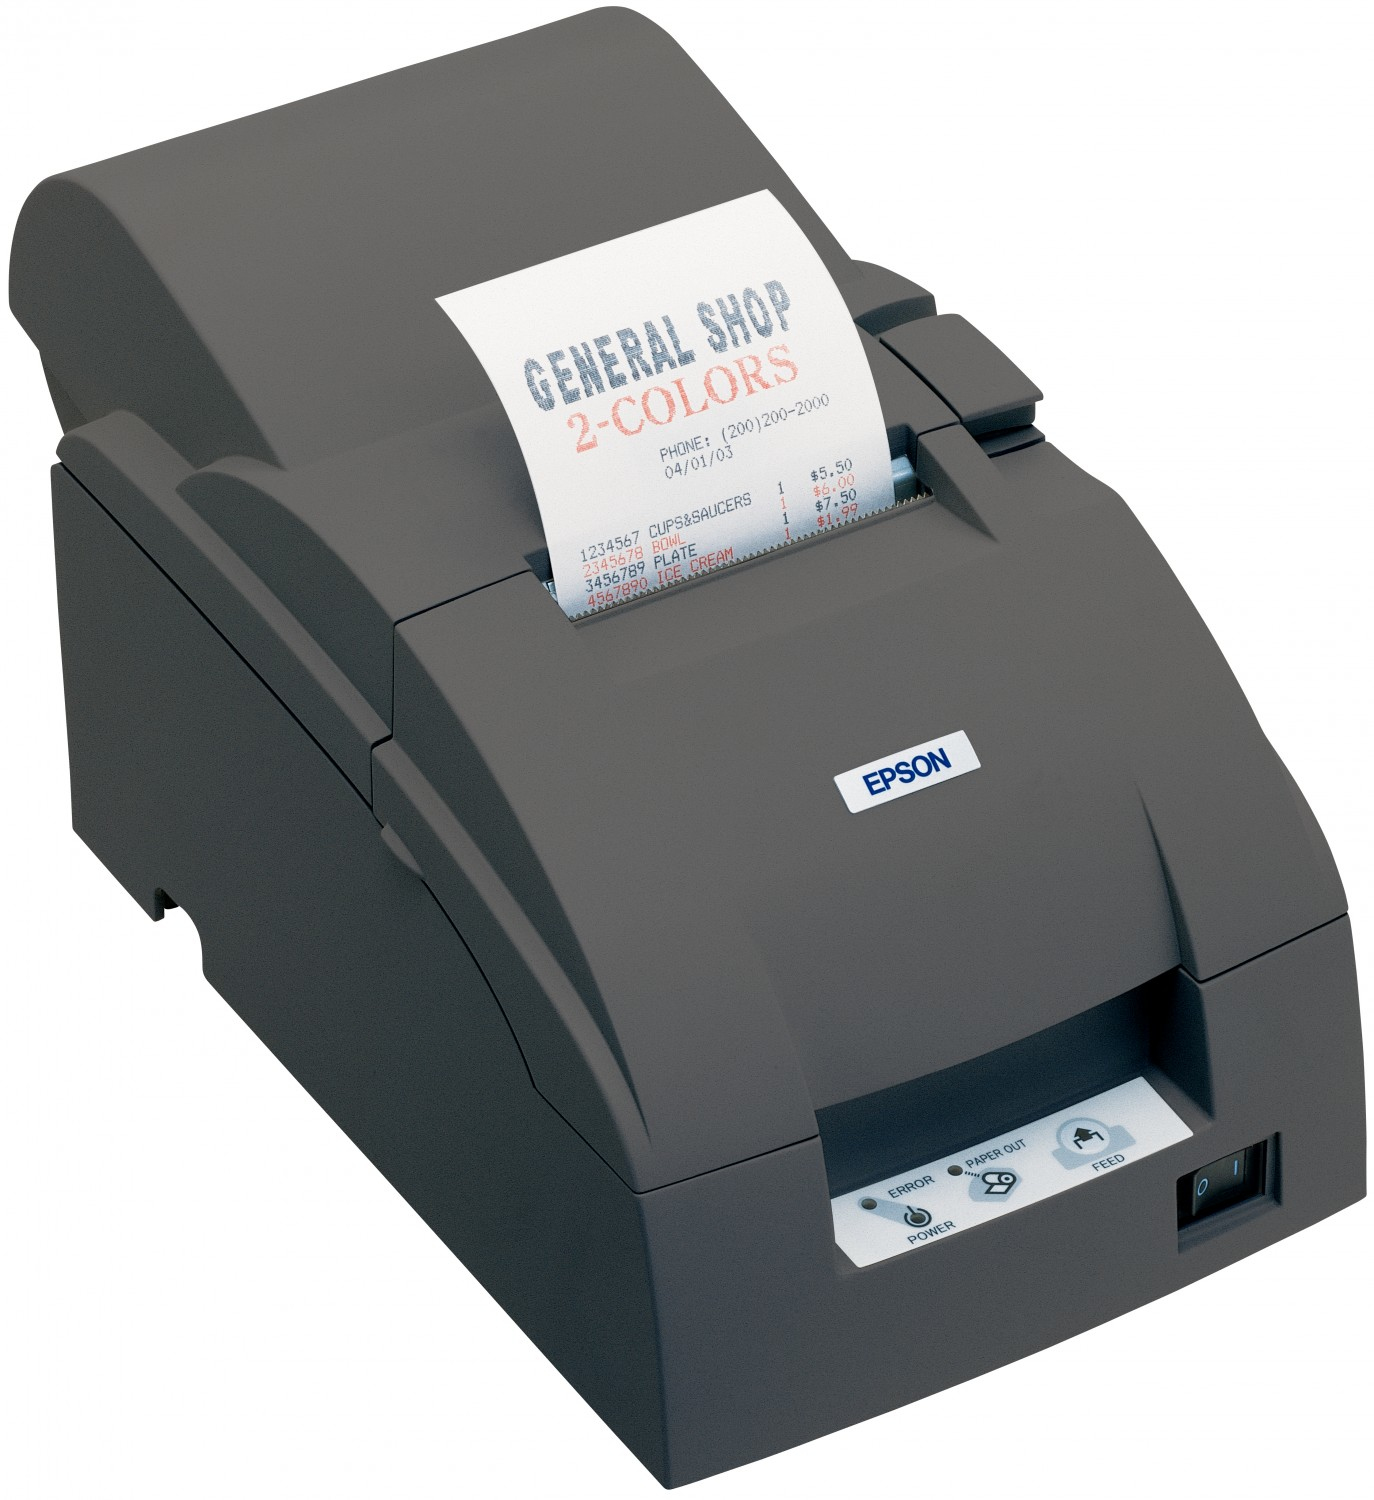 Epson TM-U220A Punktmatrix POS printer